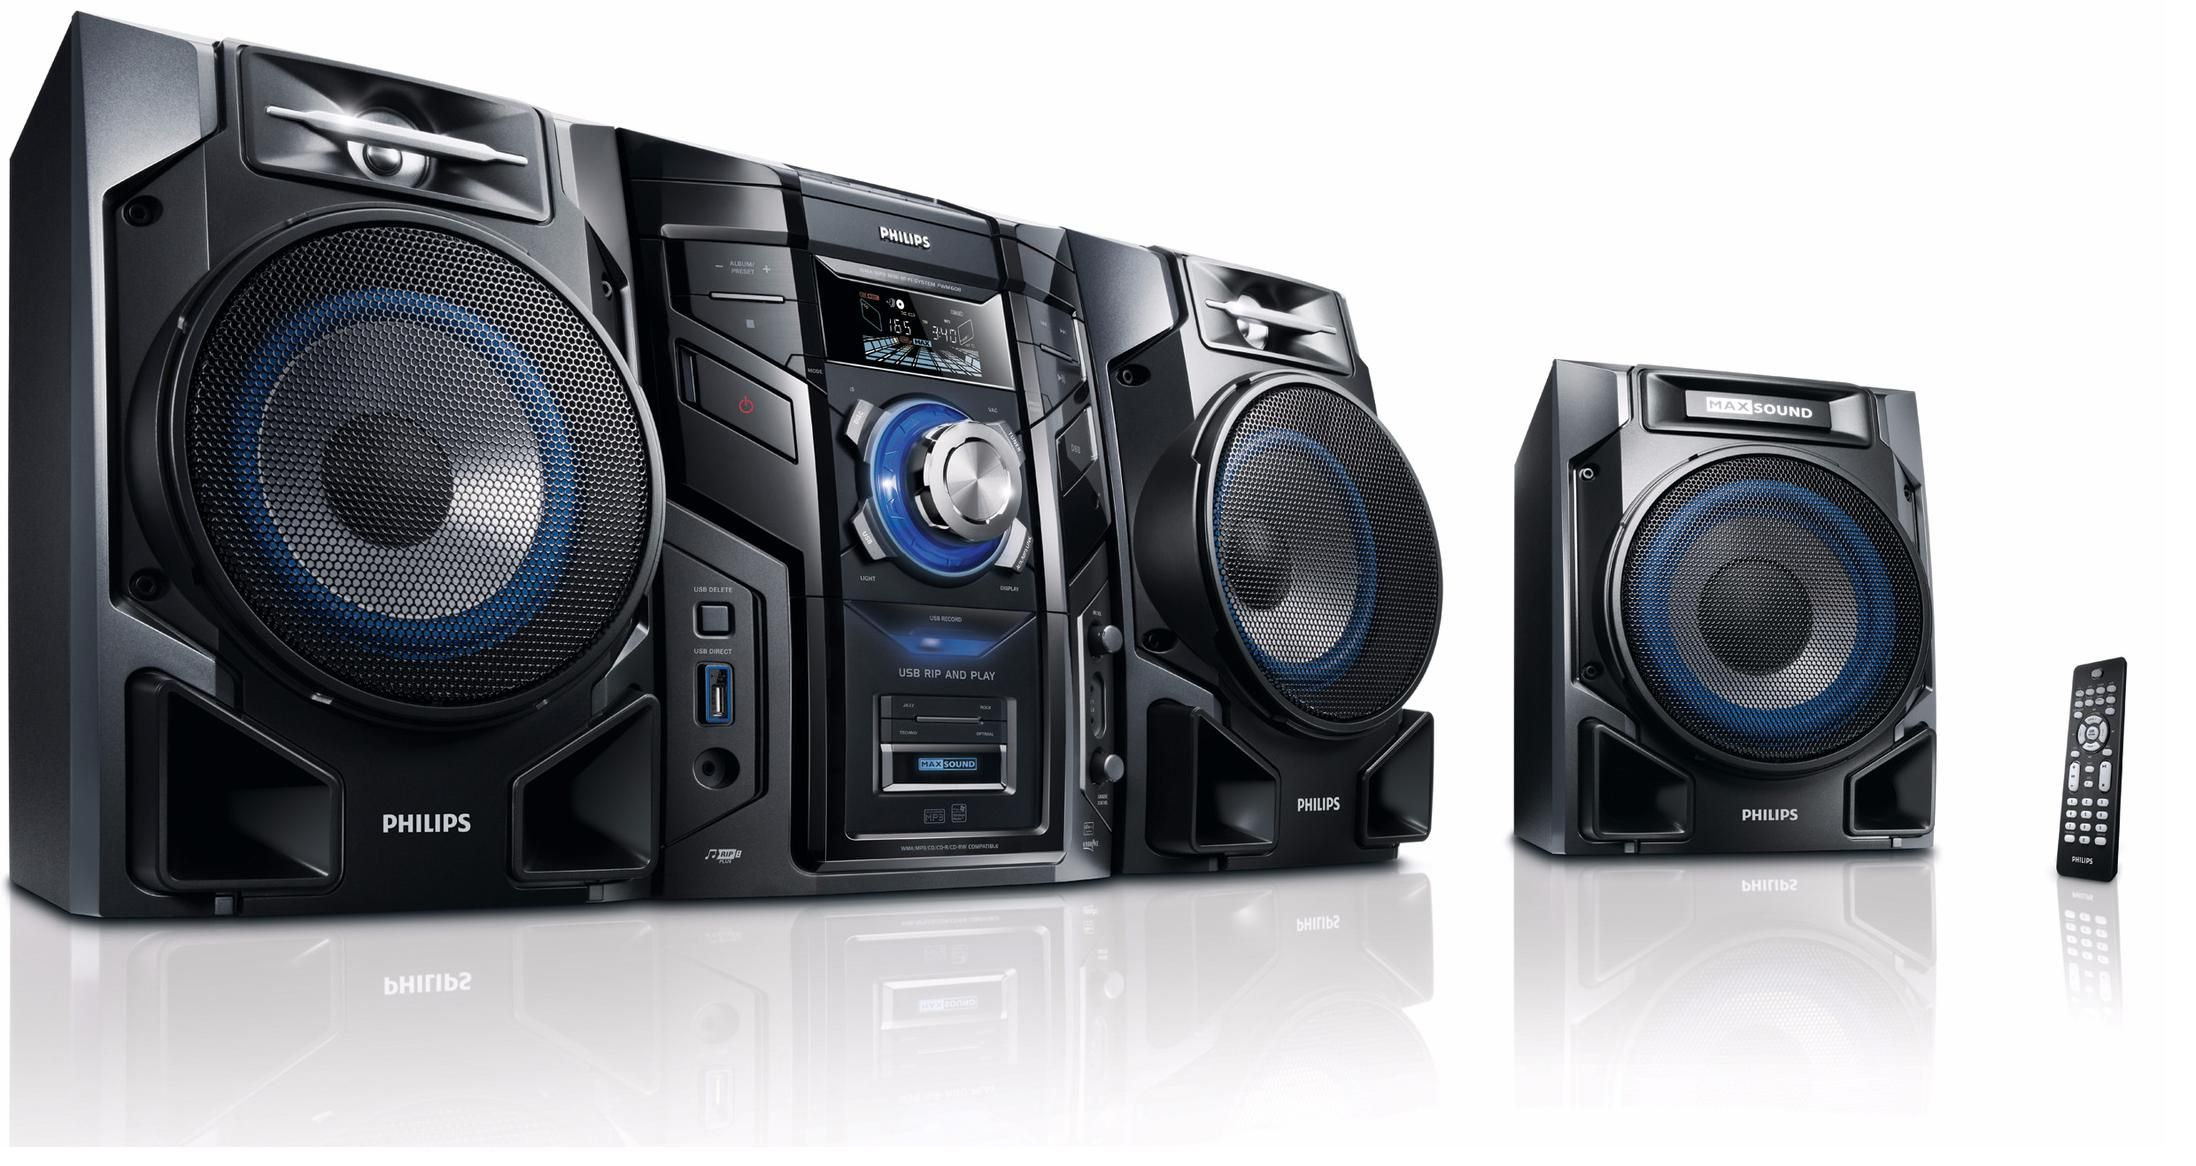 PHILIPS FWM608/12 MINI HiFi SYSTEM 600W SUBWOOFER NEW